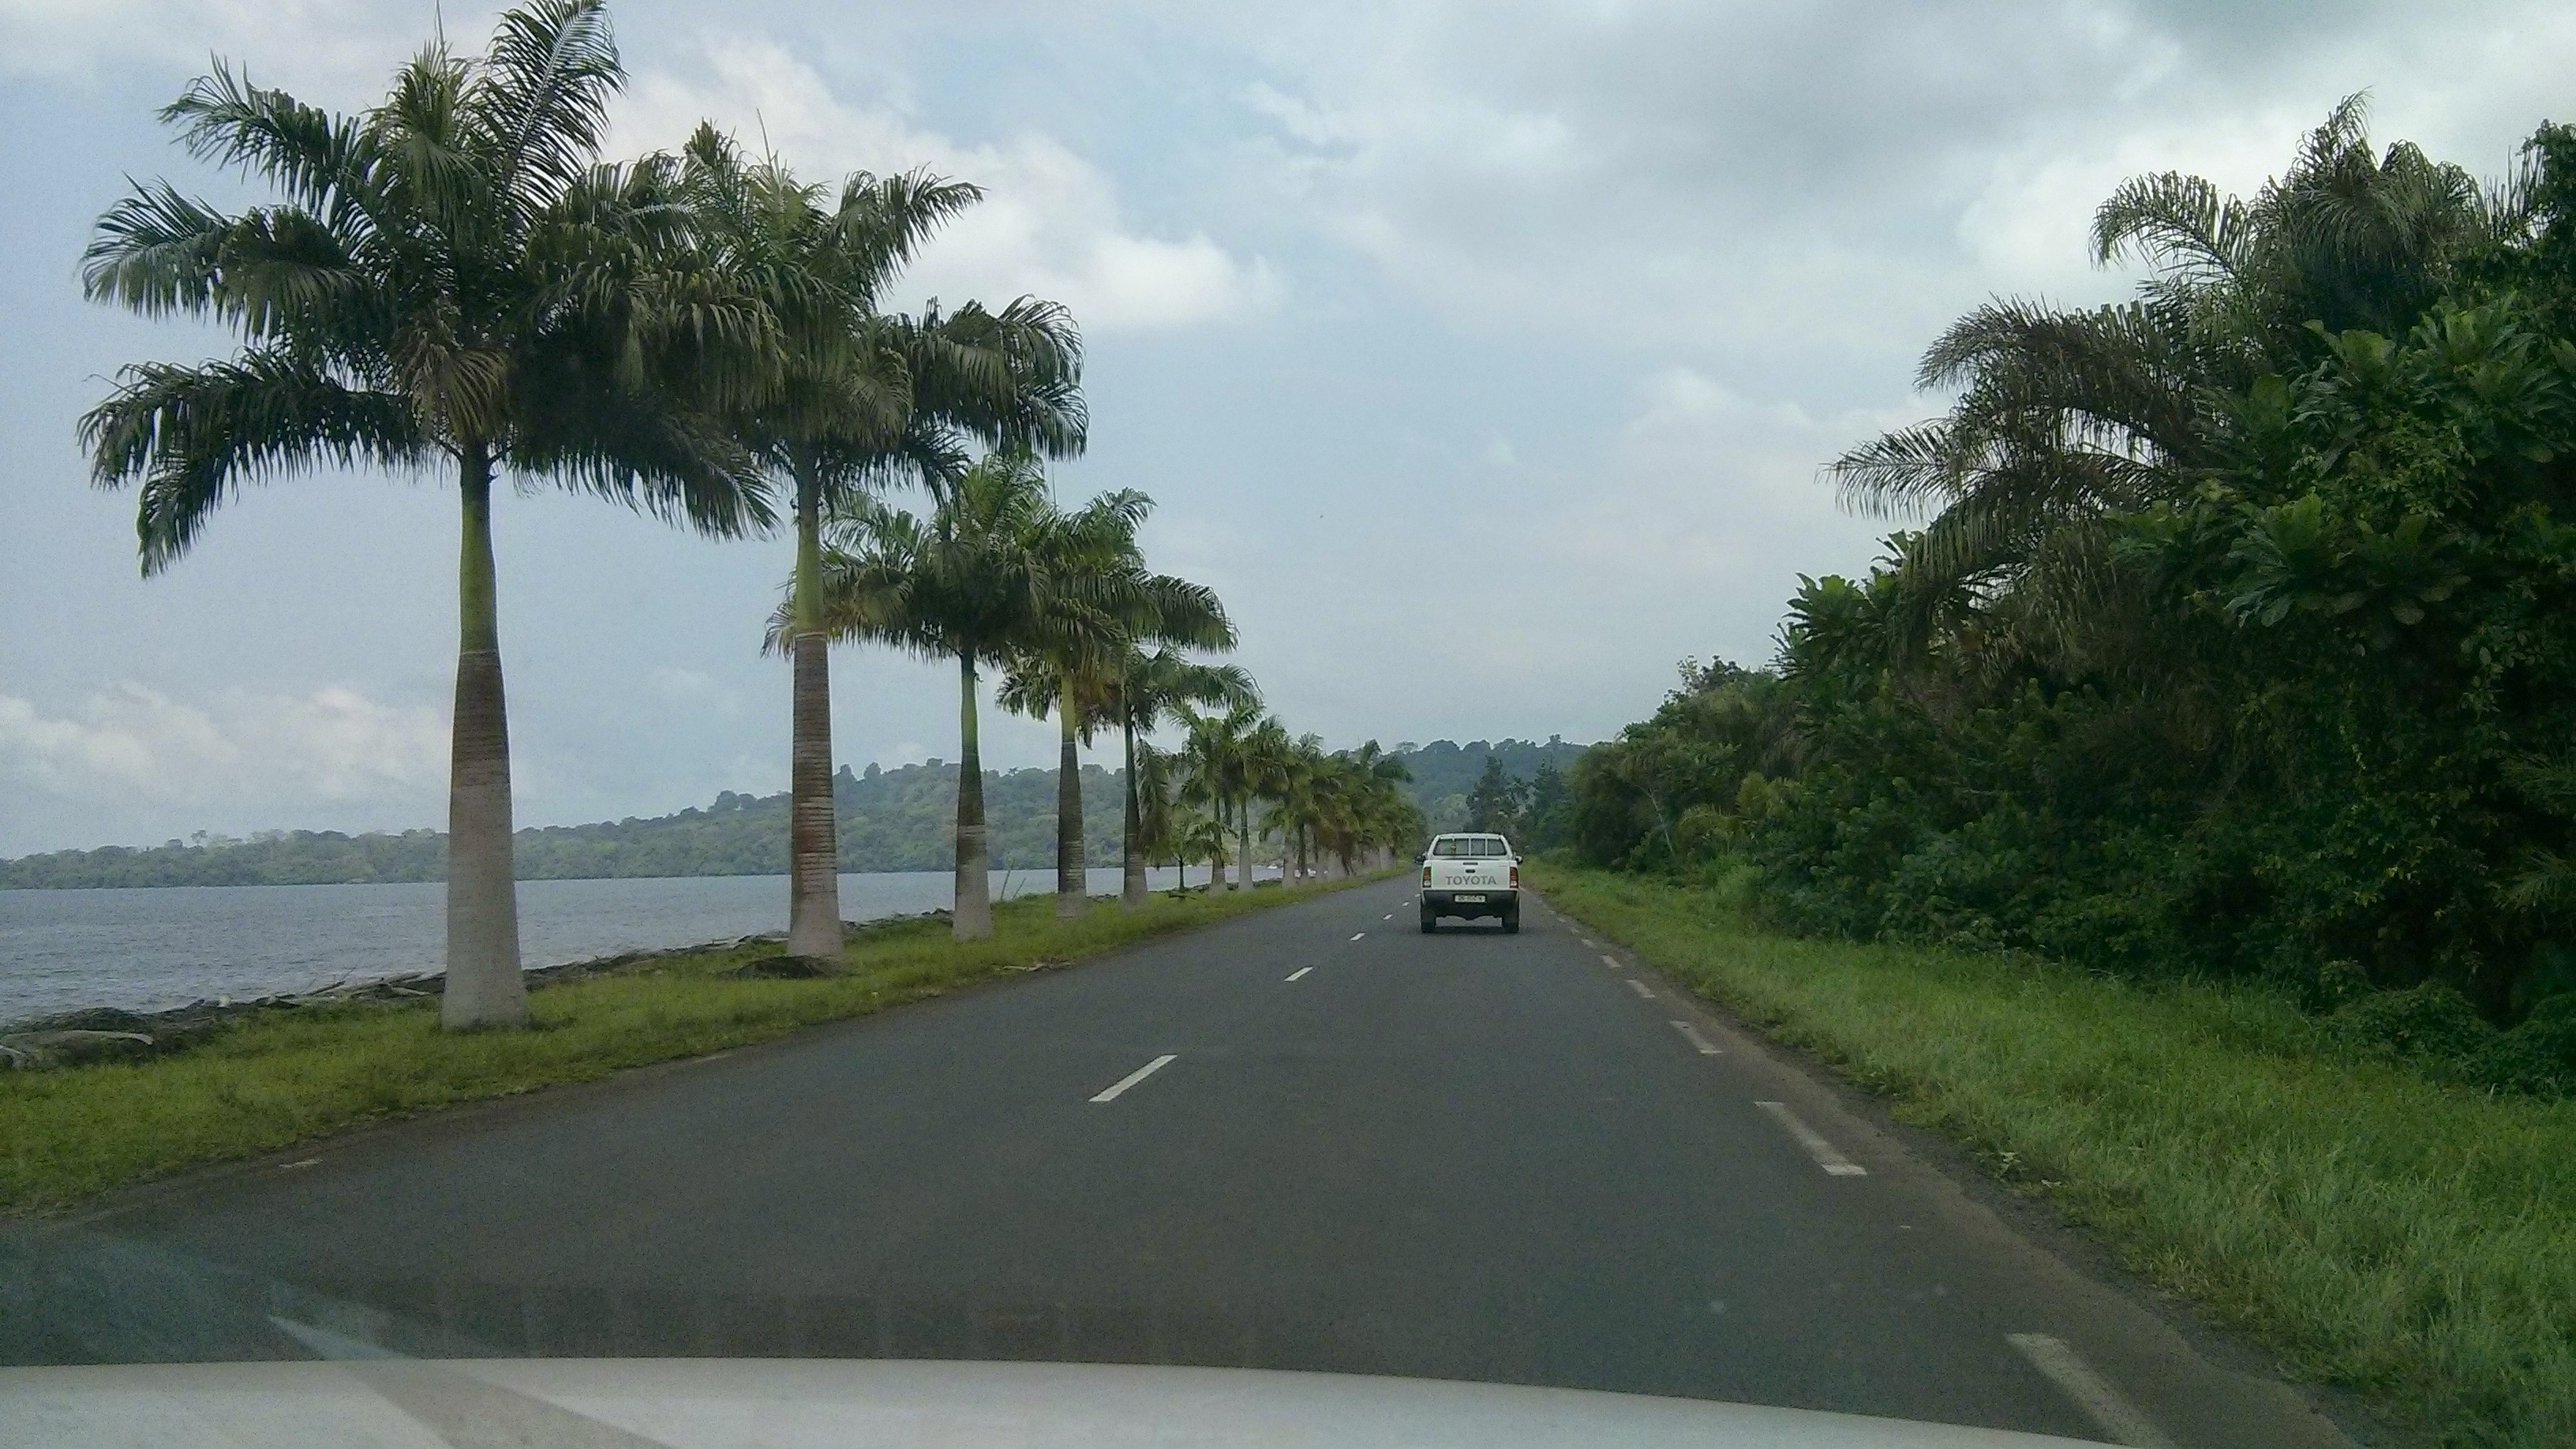 Driving alongside the water towards the southern part of the island.